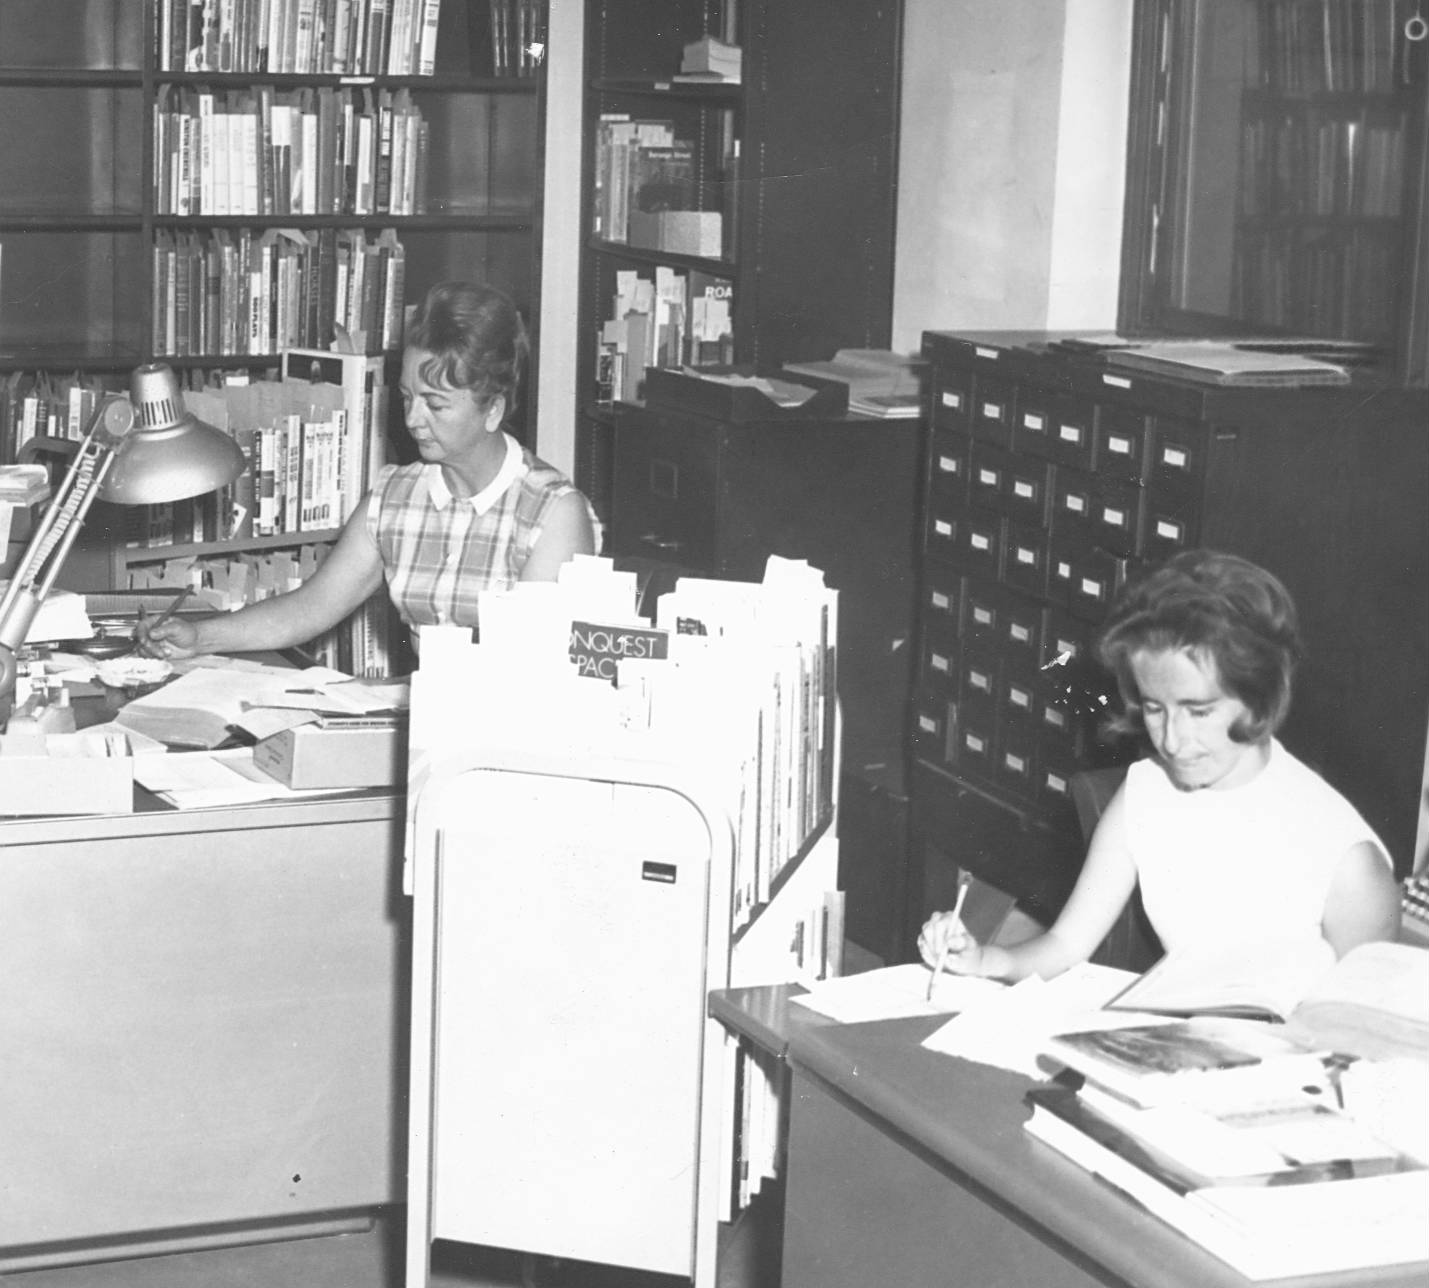 photograph of state library staff in the 1960s